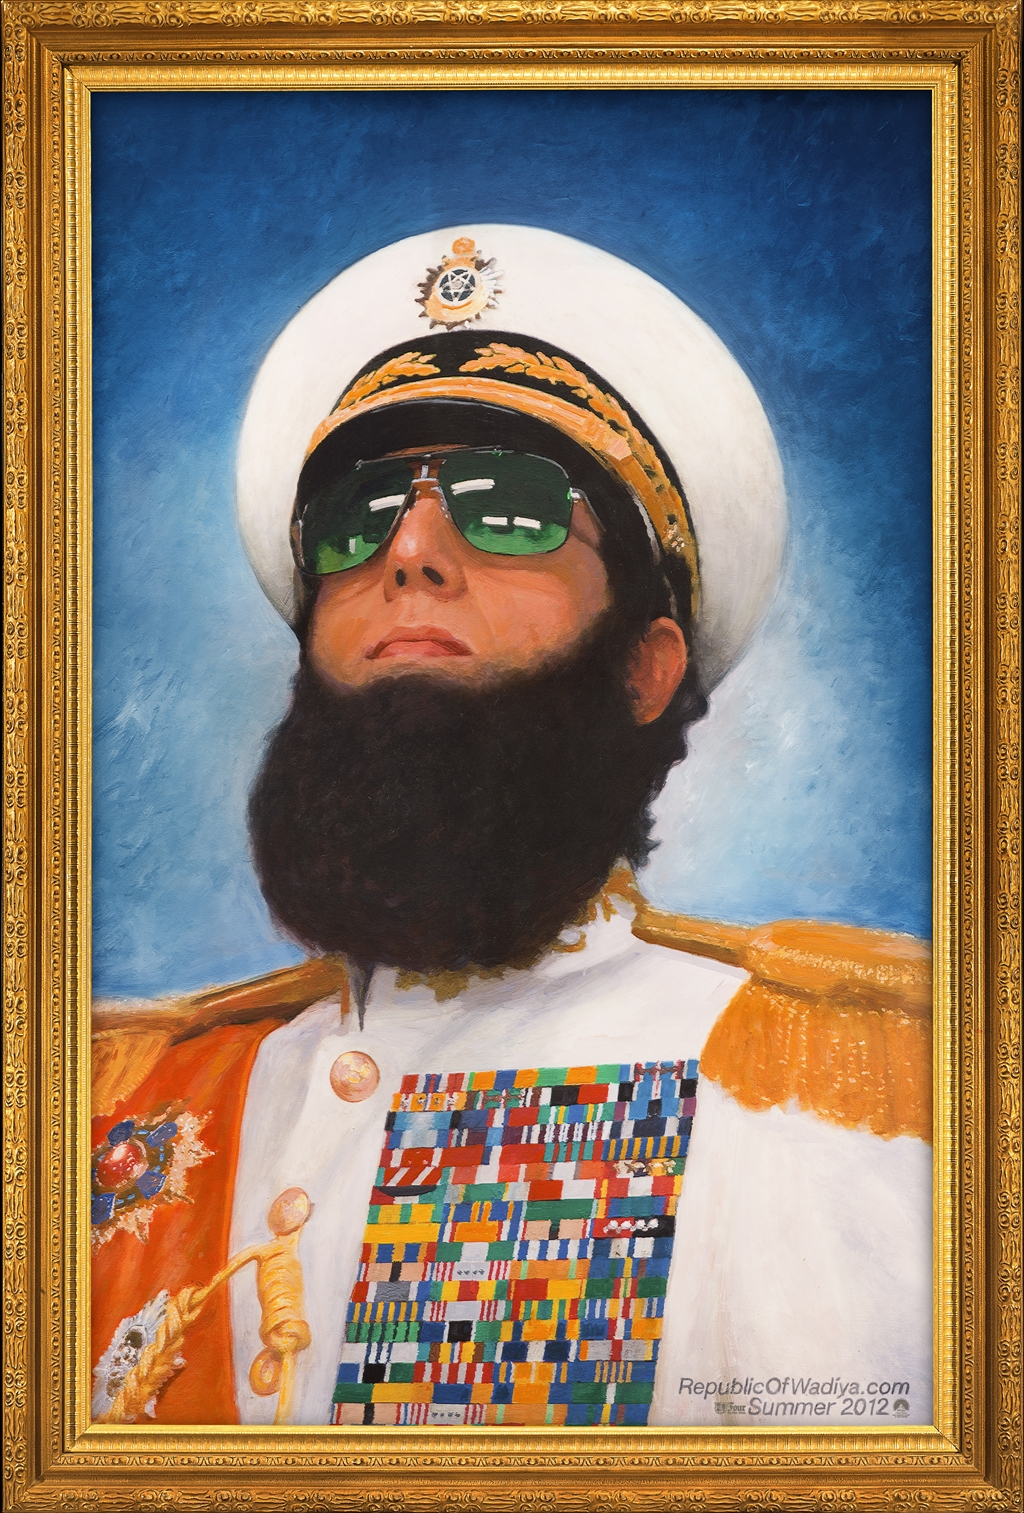 Newest Trailer from The Dictator starring Sasha Baron ...